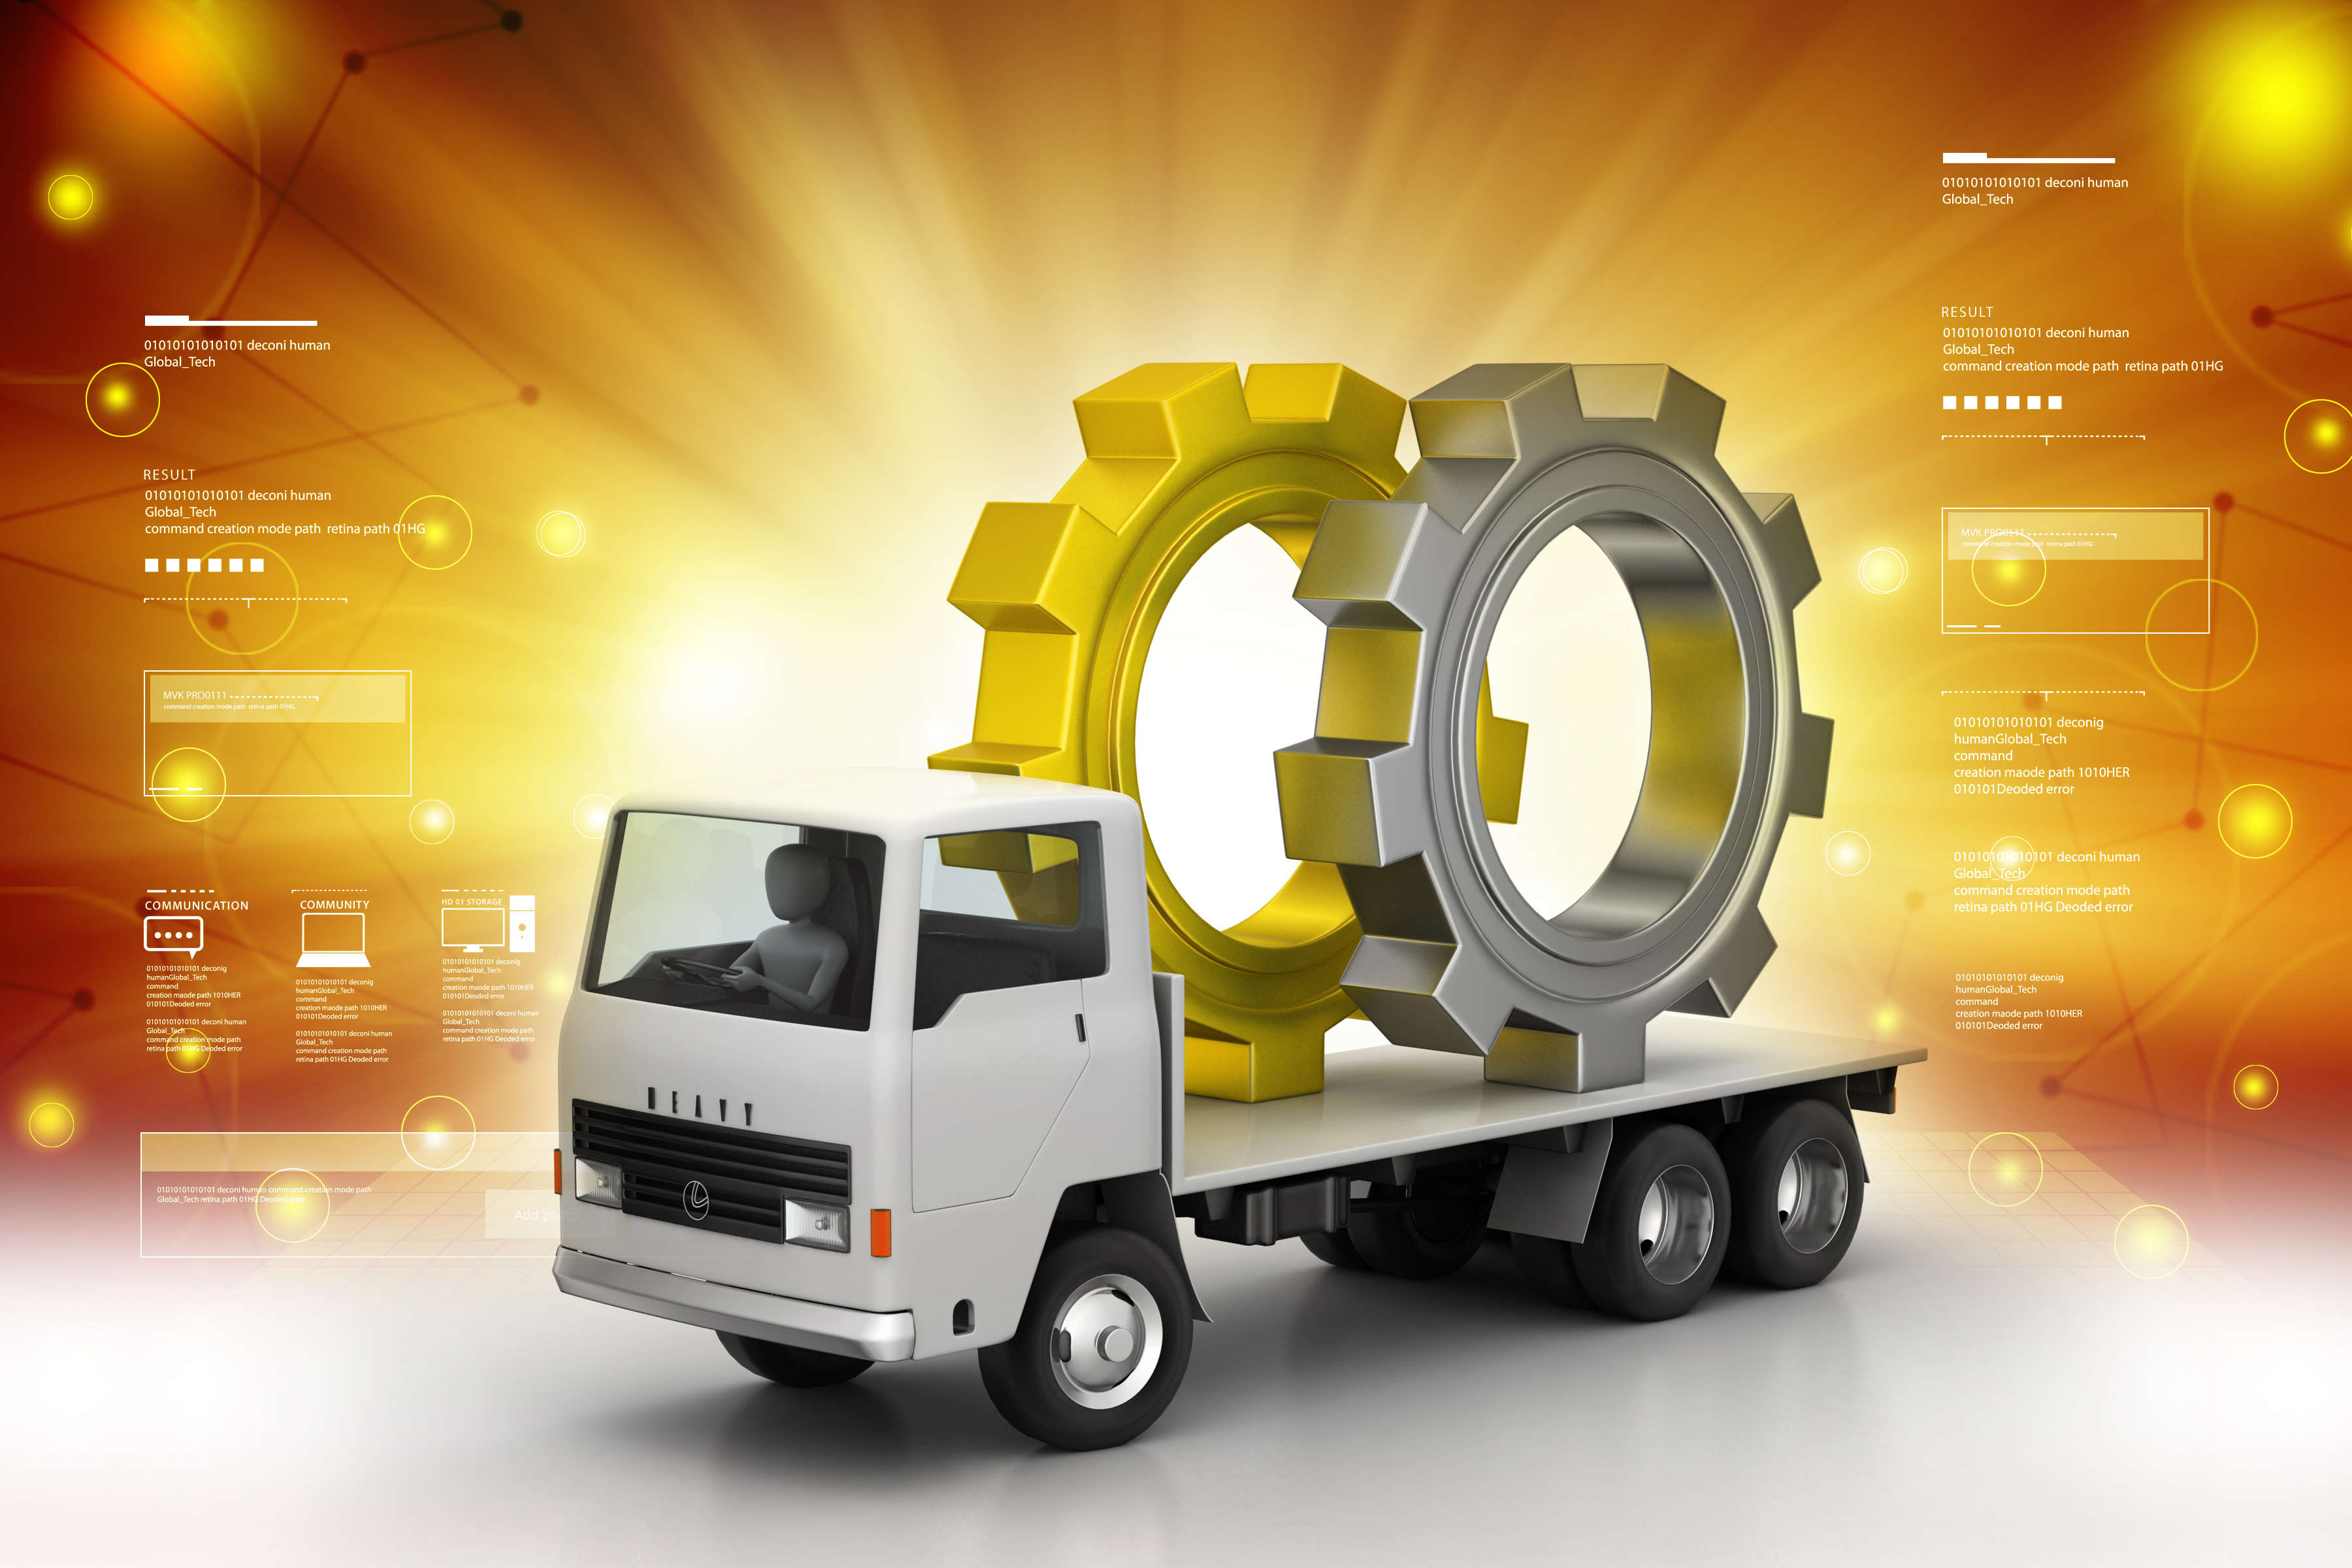 With lockdowns becoming widespread in May, freight movement, and consequently the profitability of fleet operators, would remain under pressure, weighing on demand at least in the first quarter, Crisil said in a release.